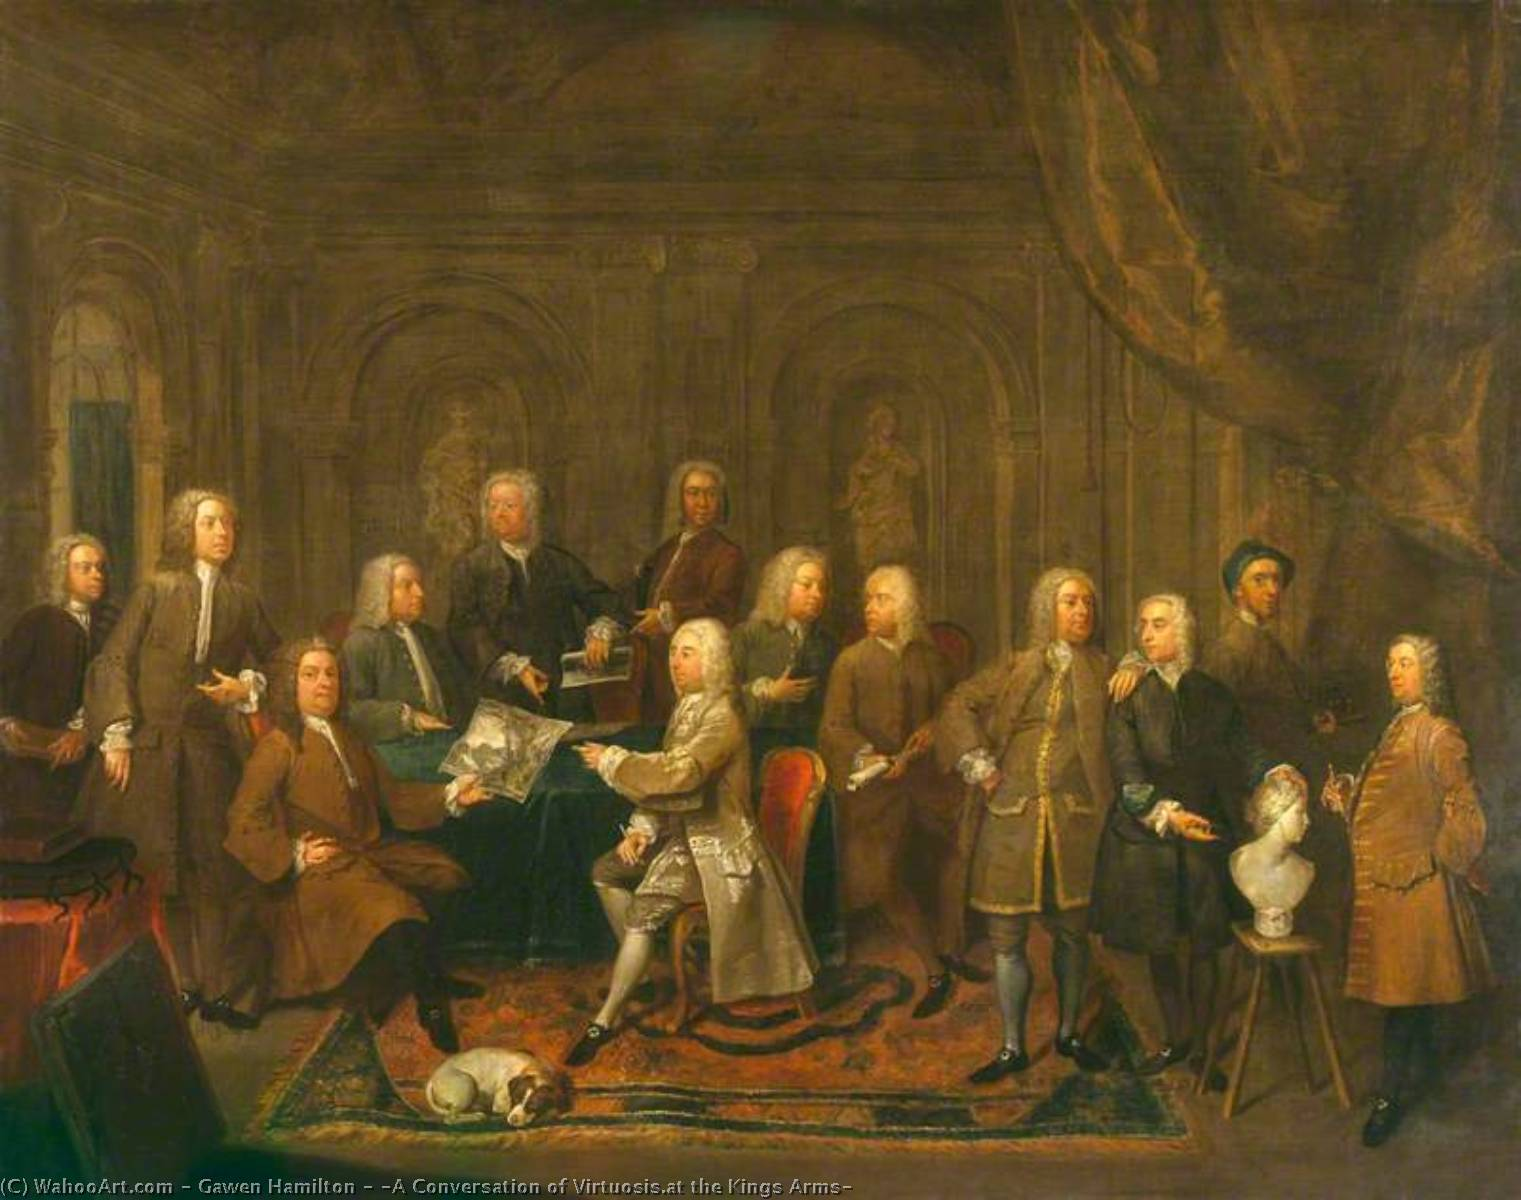 Wikioo.org - The Encyclopedia of Fine Arts - Painting, Artwork by Gawen Hamilton - 'A Conversation of Virtuosis.at the Kings Arms'